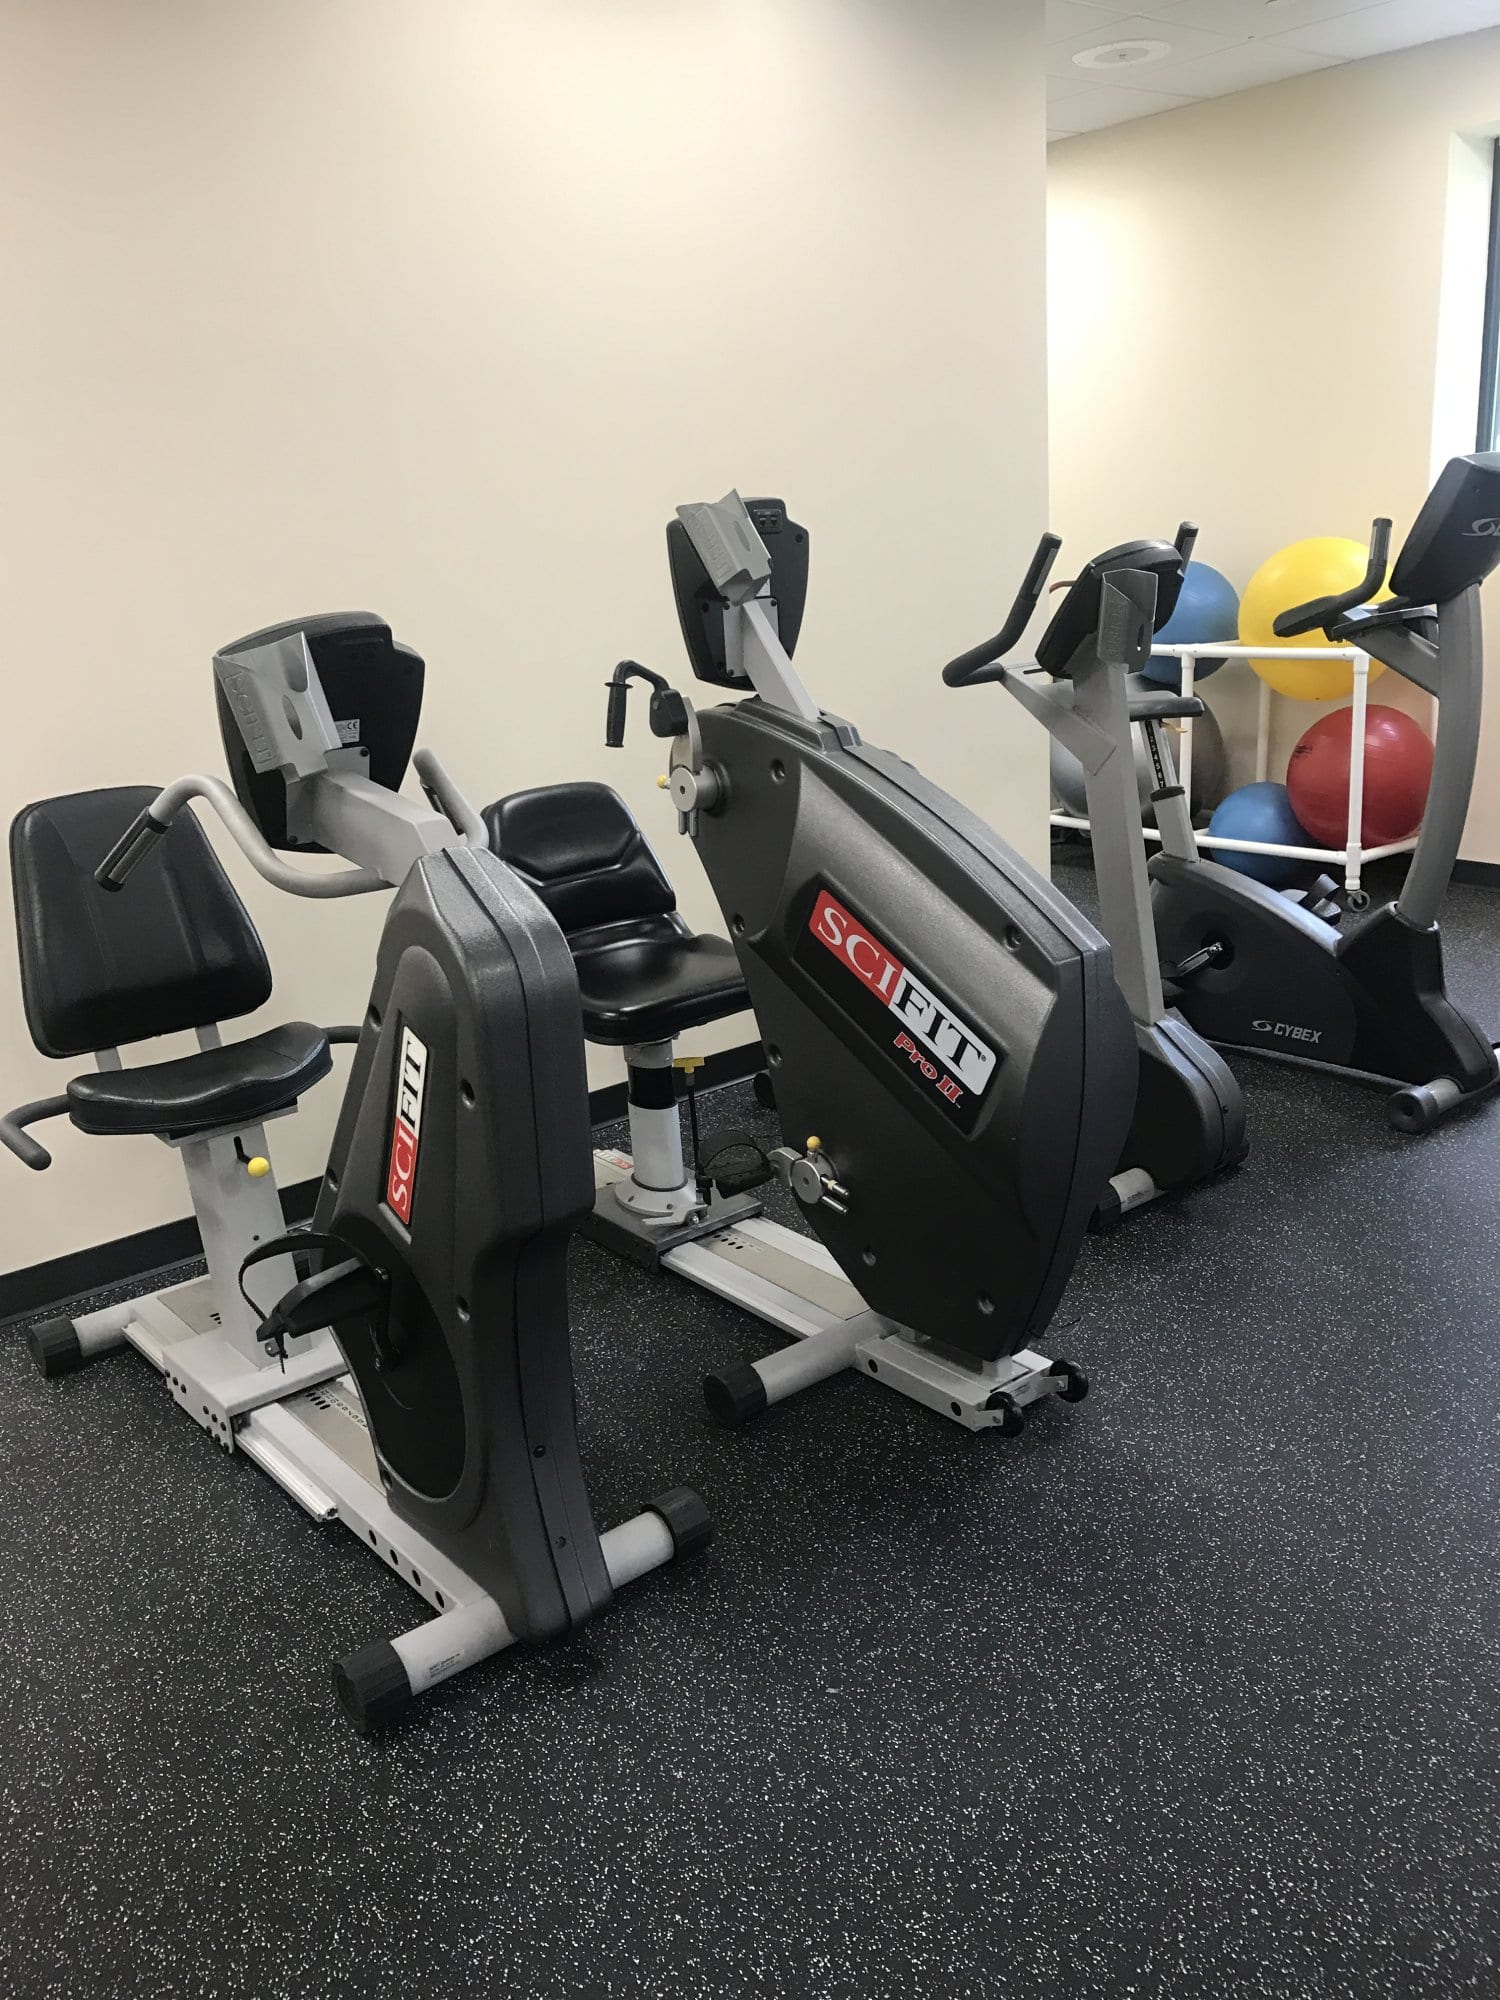 Here is an image of three bikes used in physical therapy at our clinic in Pleasantville, New York. Bikes are great for knee pain exercises.